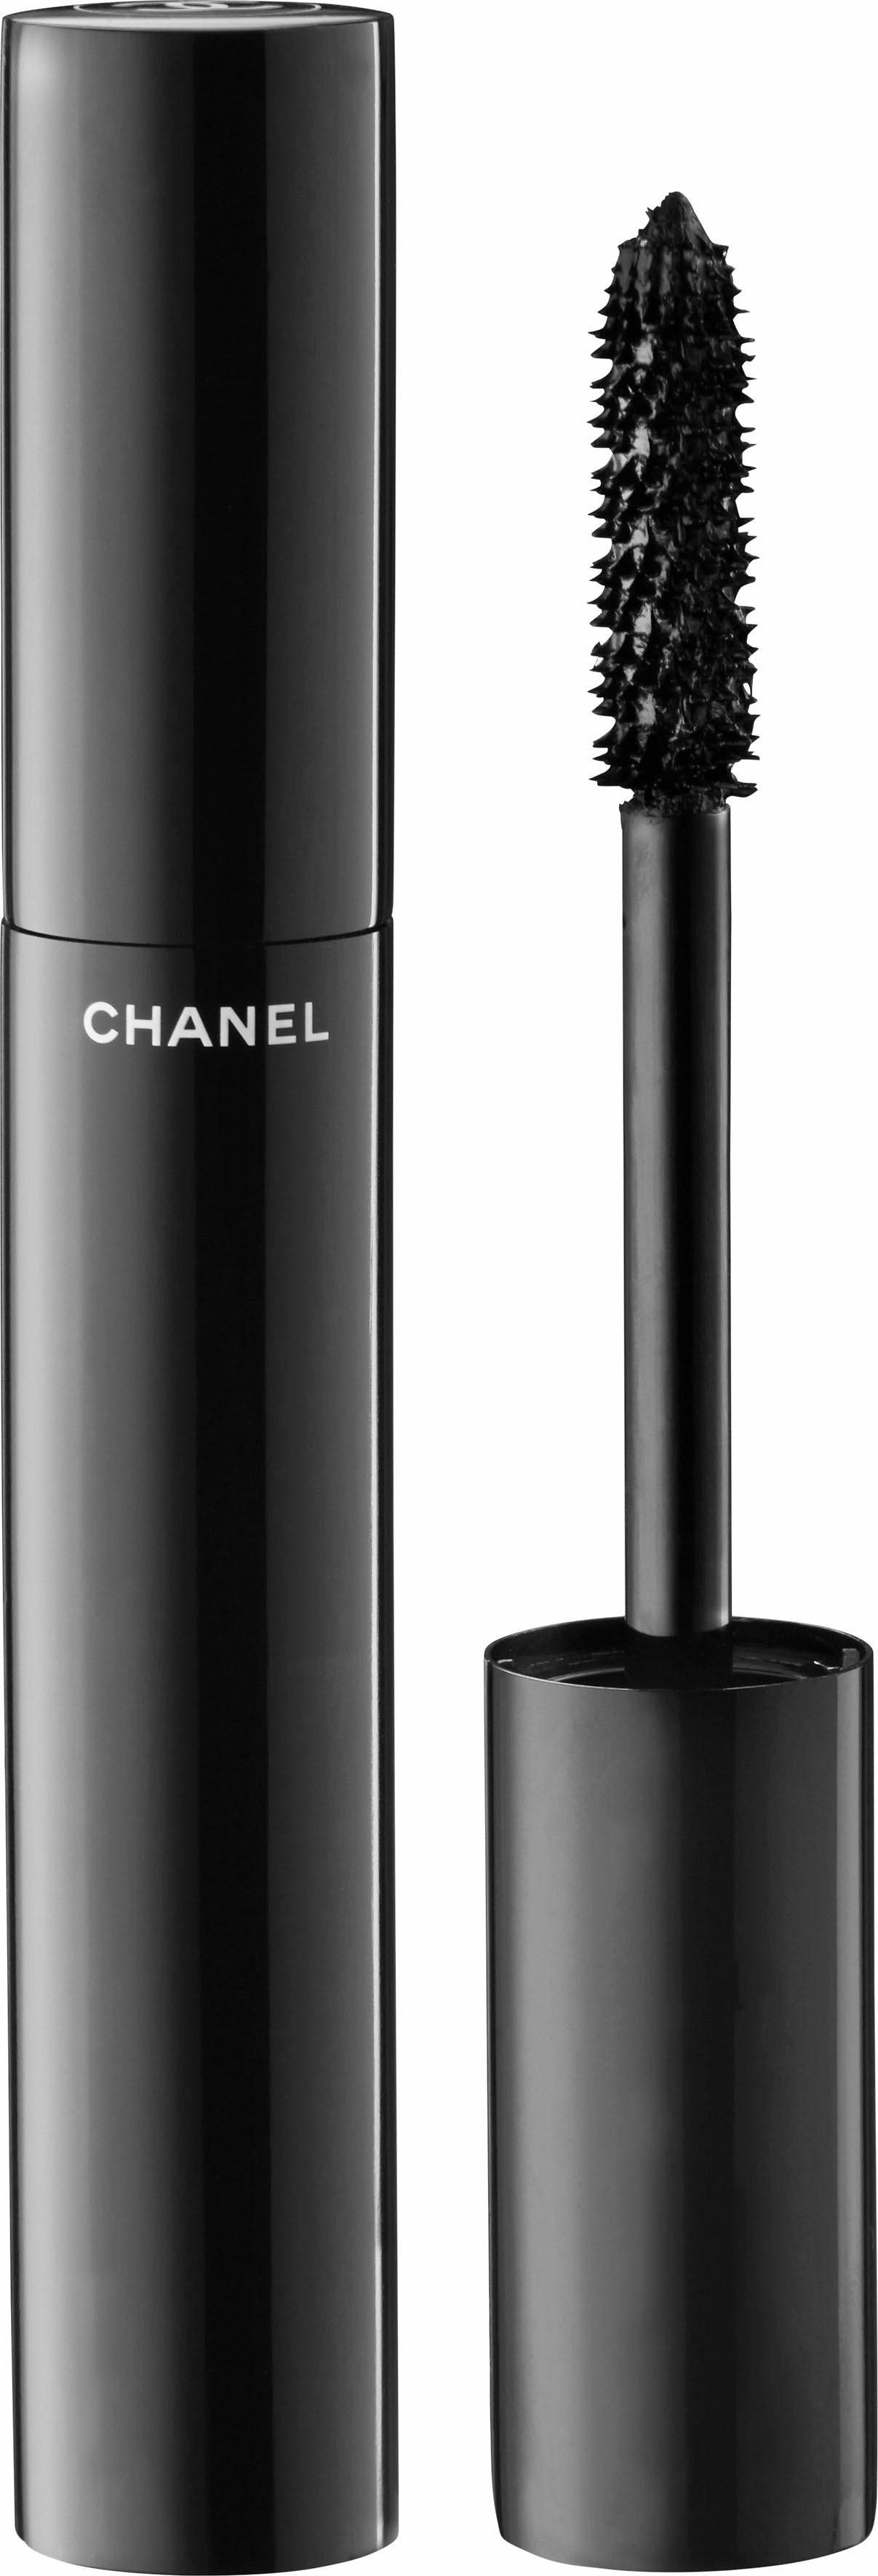 Chanel, »Le Volume de Chanel Waterproof«, Mascara